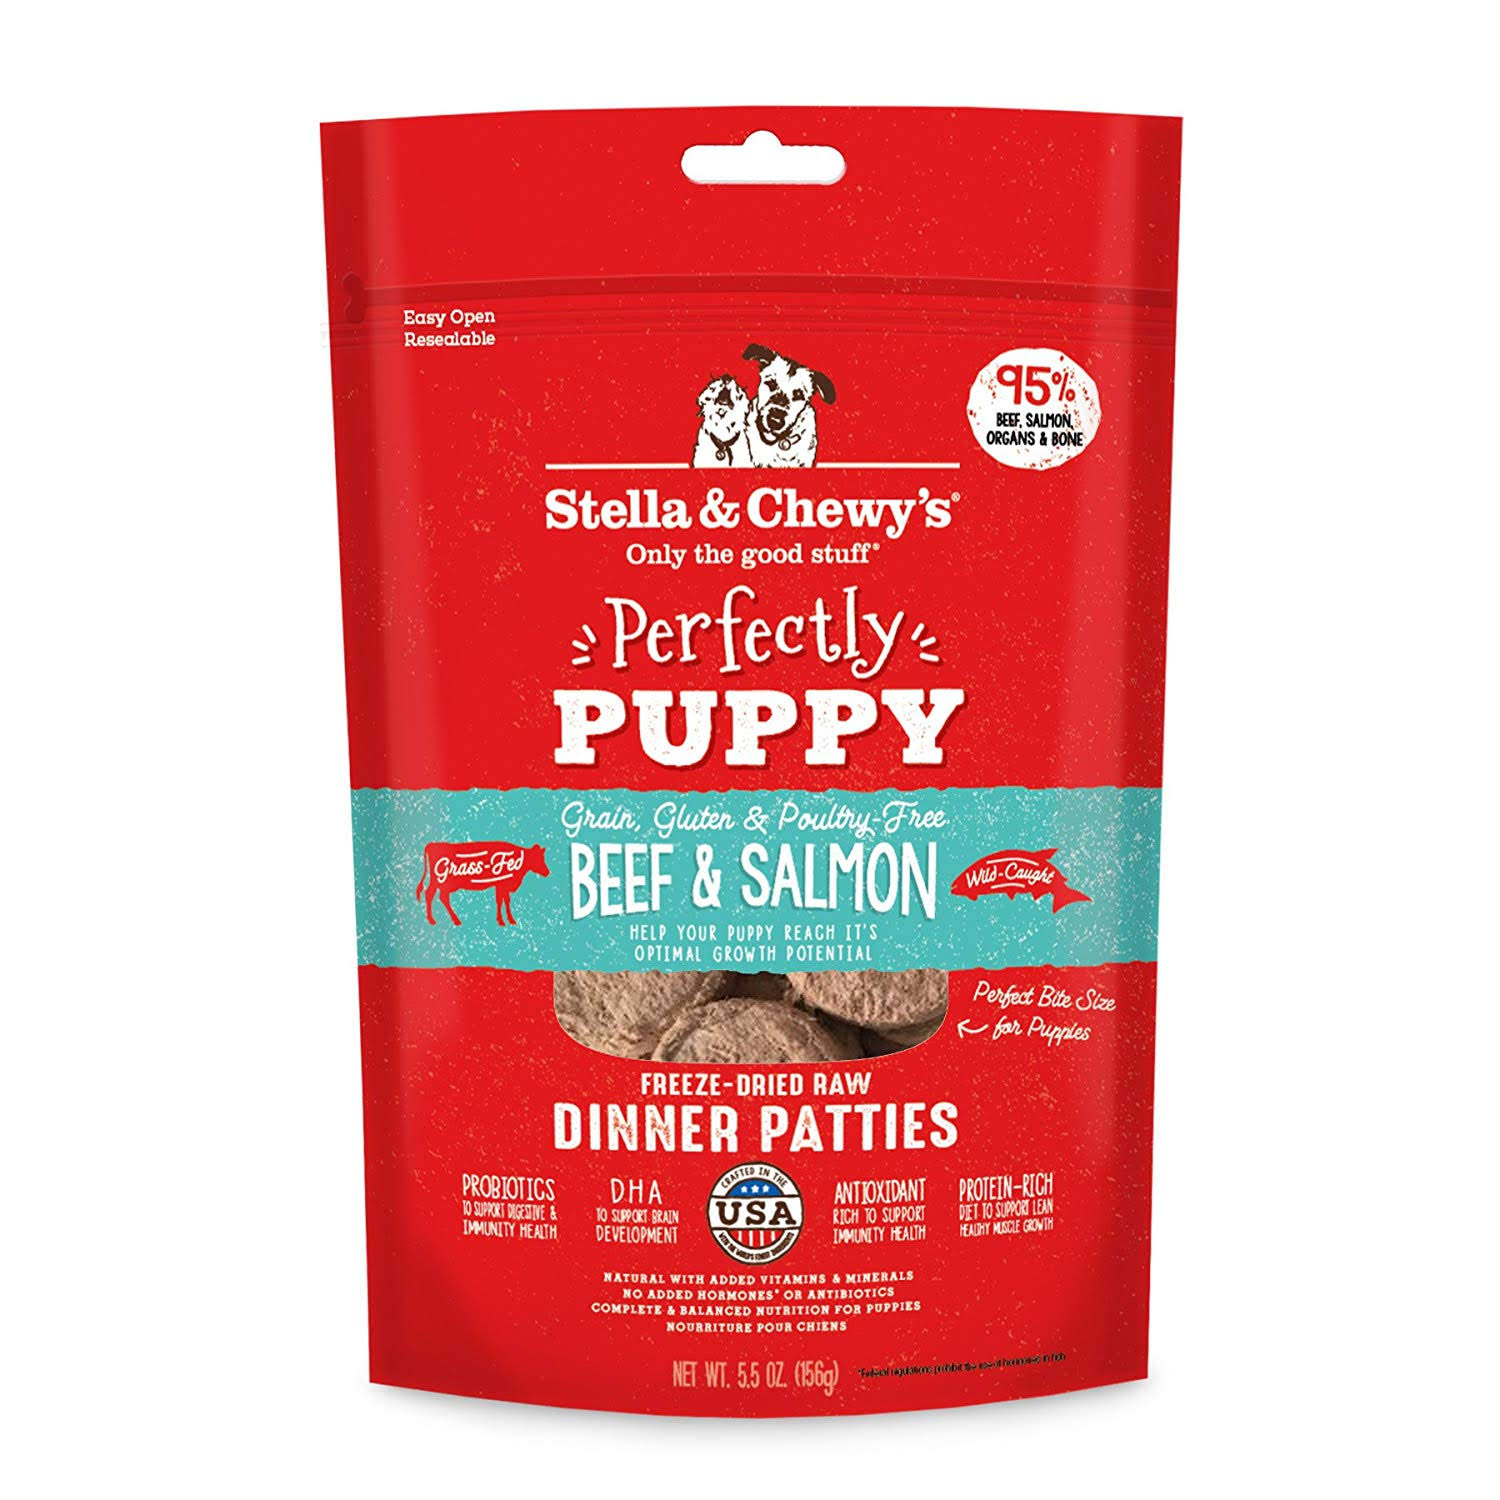 Stella Chewy's Perfectly Puppy Freeze Dried Raw Beef & Salmon Dinner Patties Grain Free Dog Food - 5.5 oz